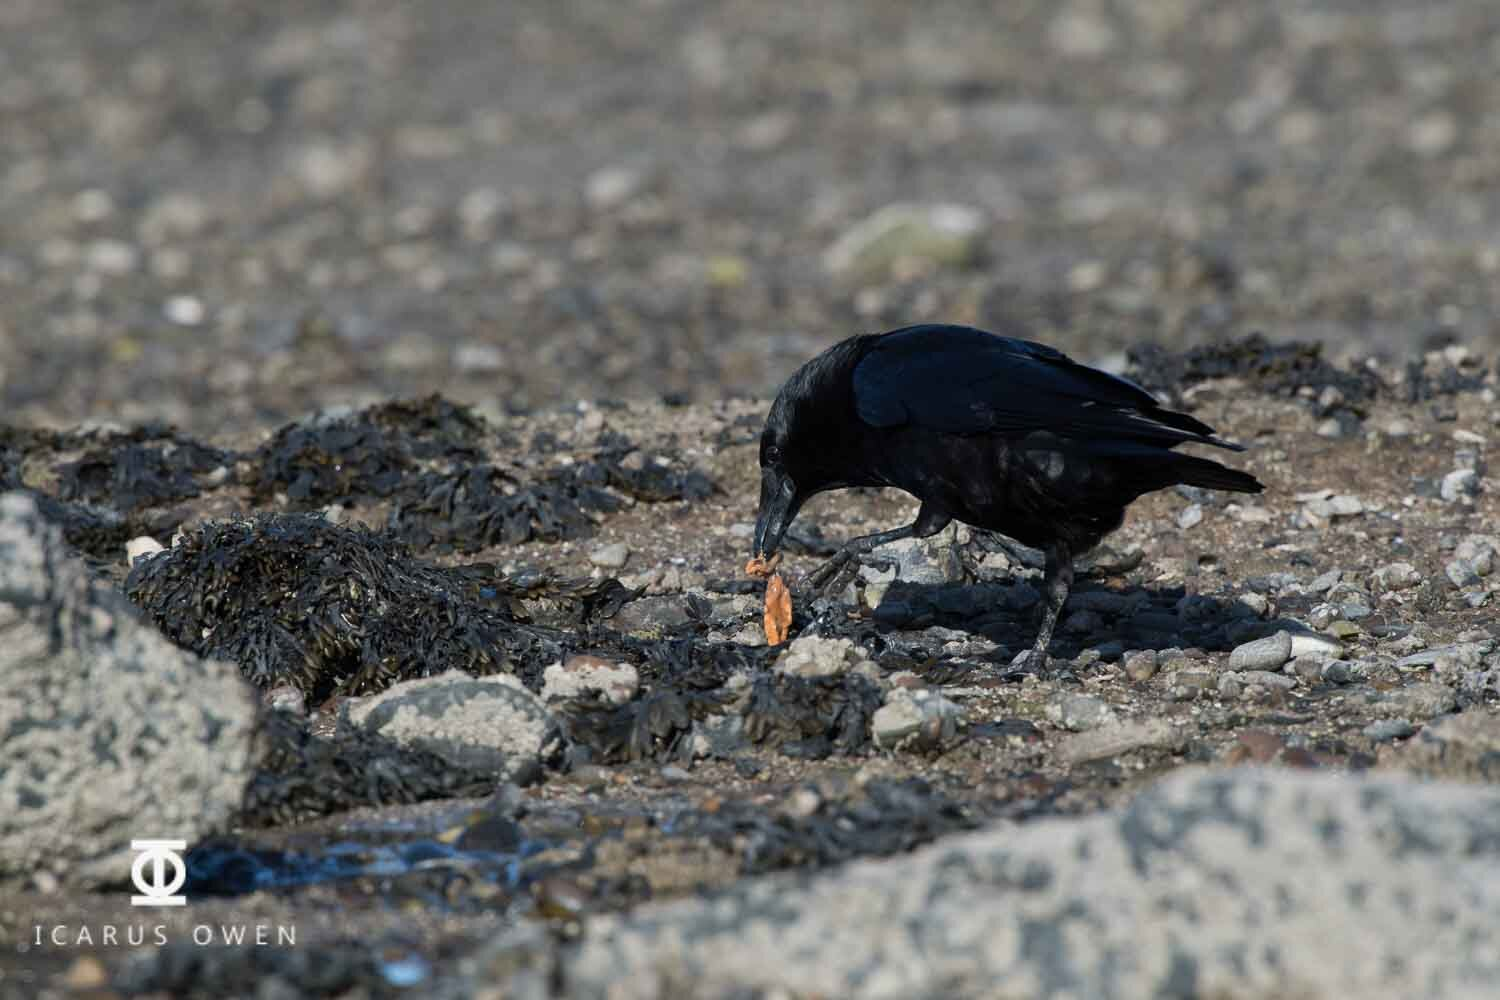 Crow manipulating a mussel with a broken shell to extract the meat.